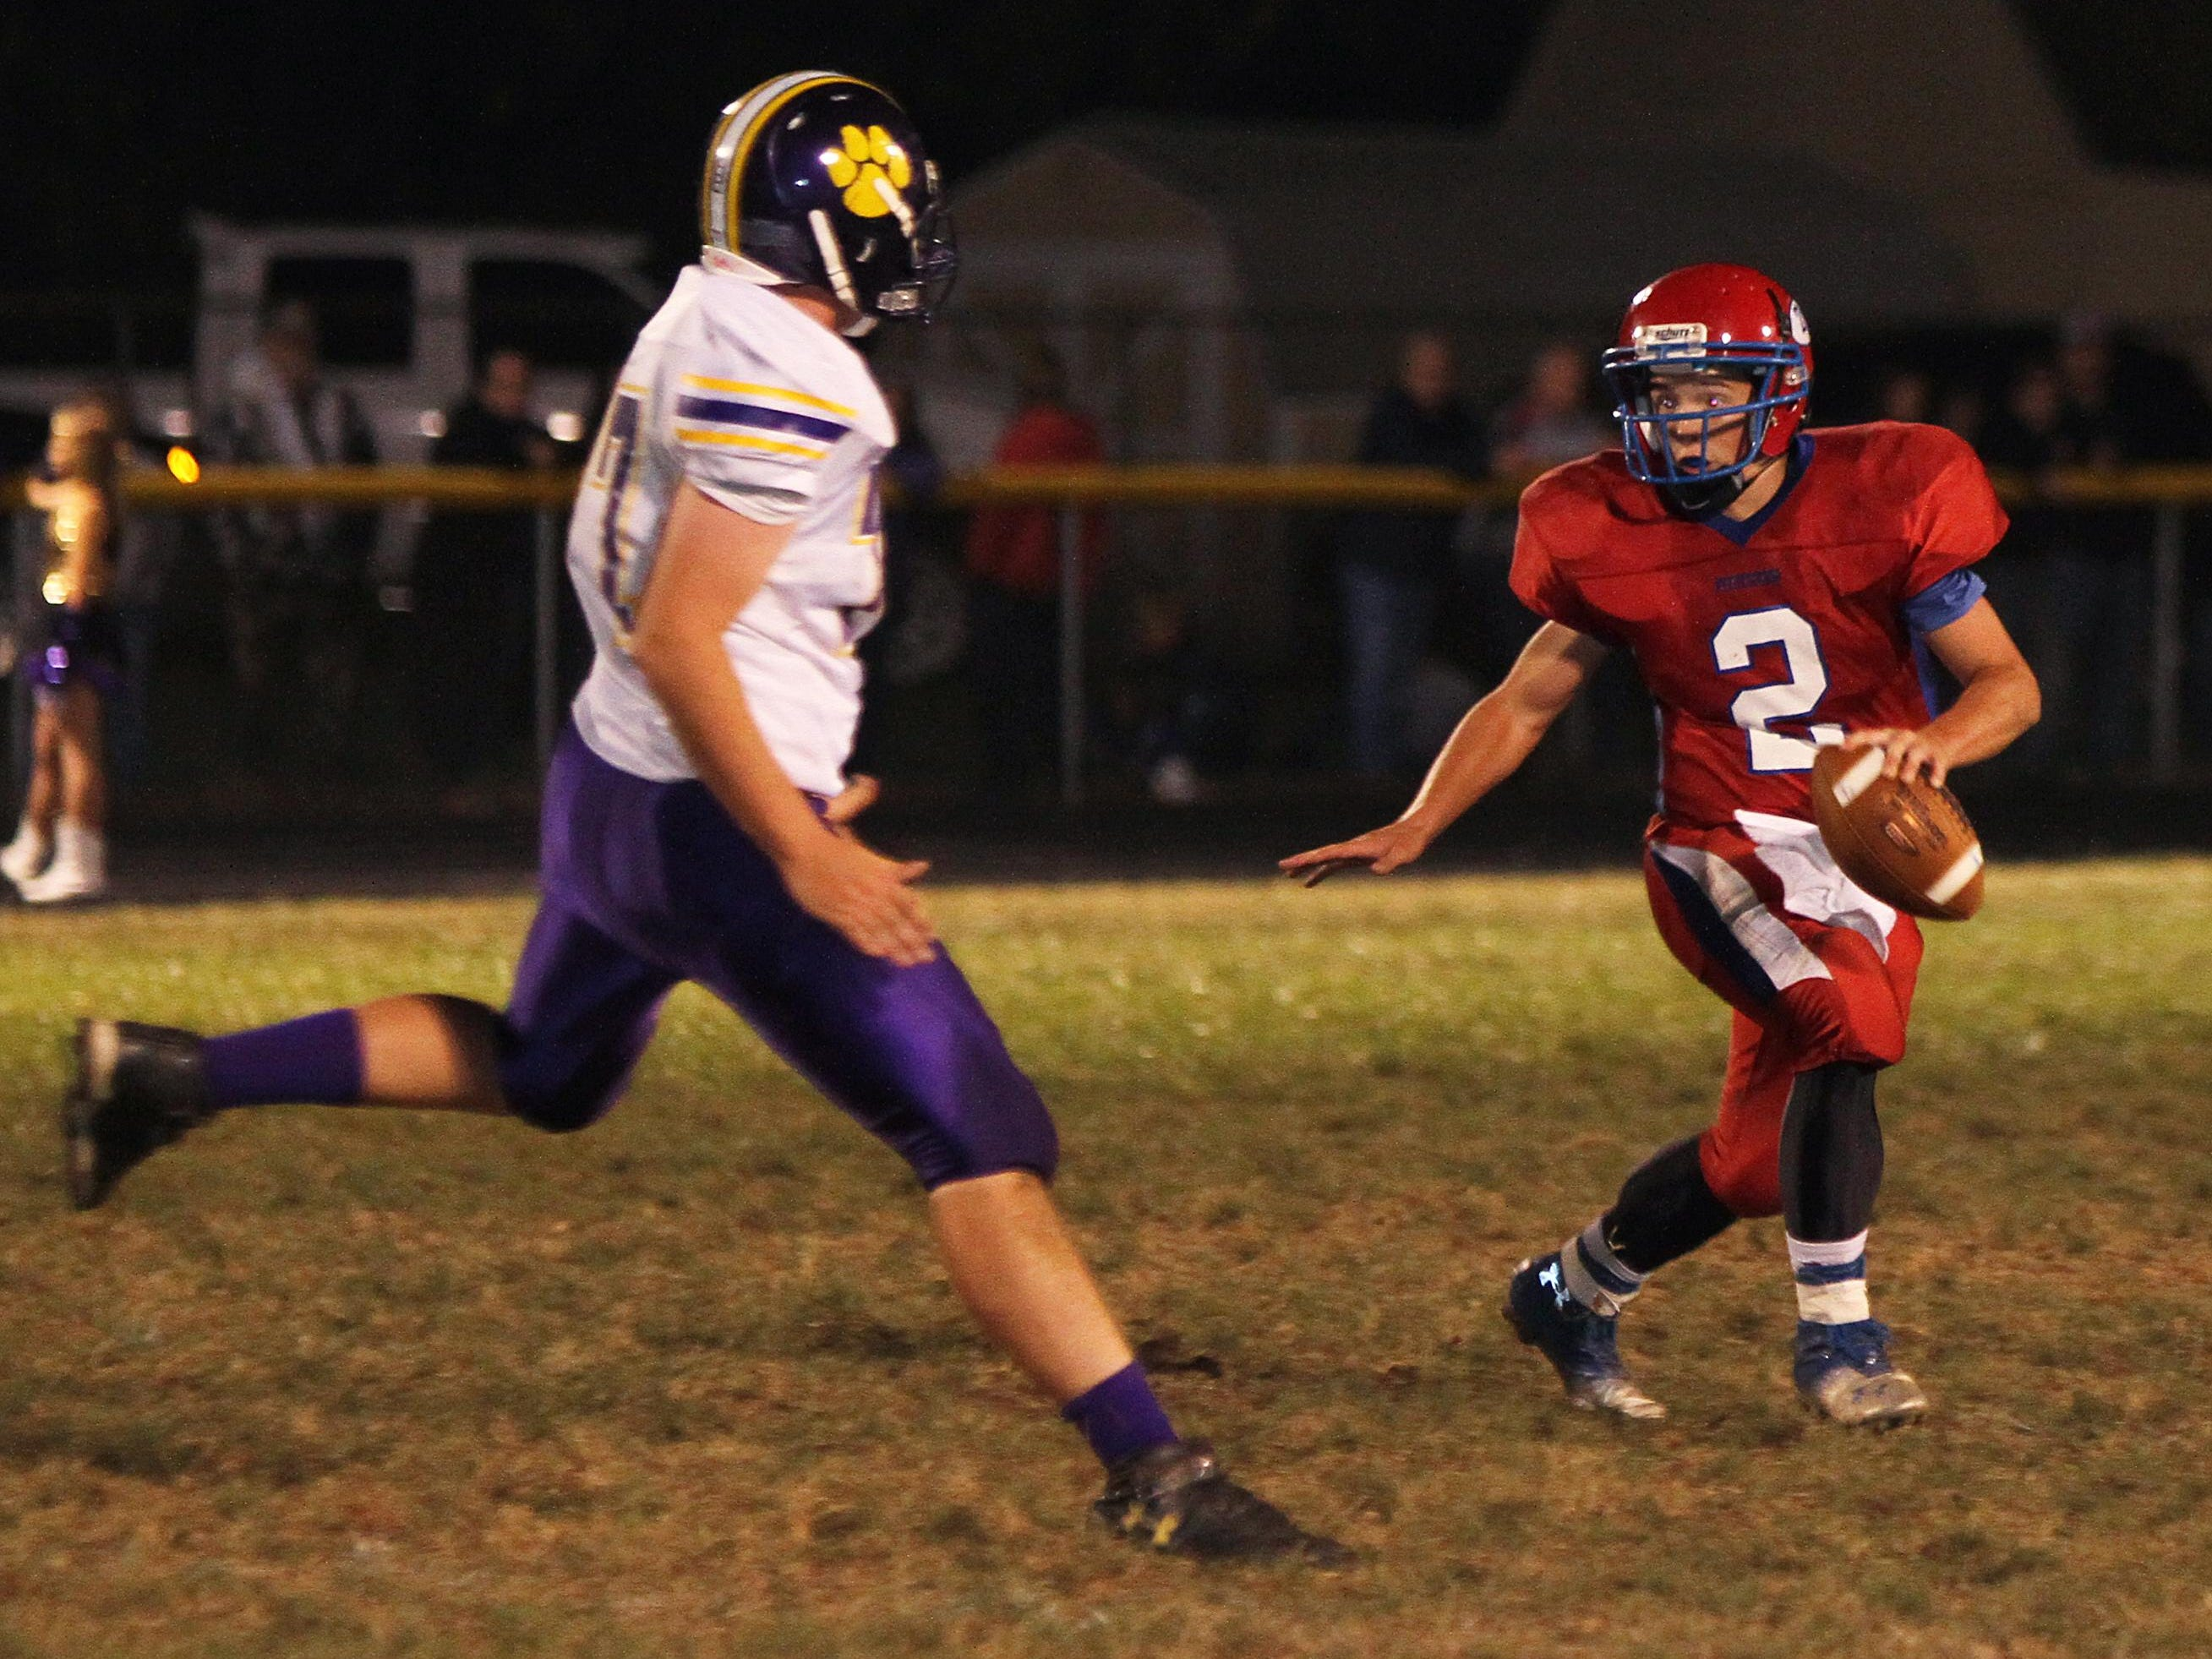 Zane Trace's Joel Dunkle scrambles out of the pocket to avoid a McClain defender during the 2013 season. Dunkle, now a senior, will return to his QB role for the Pioneers this fall.